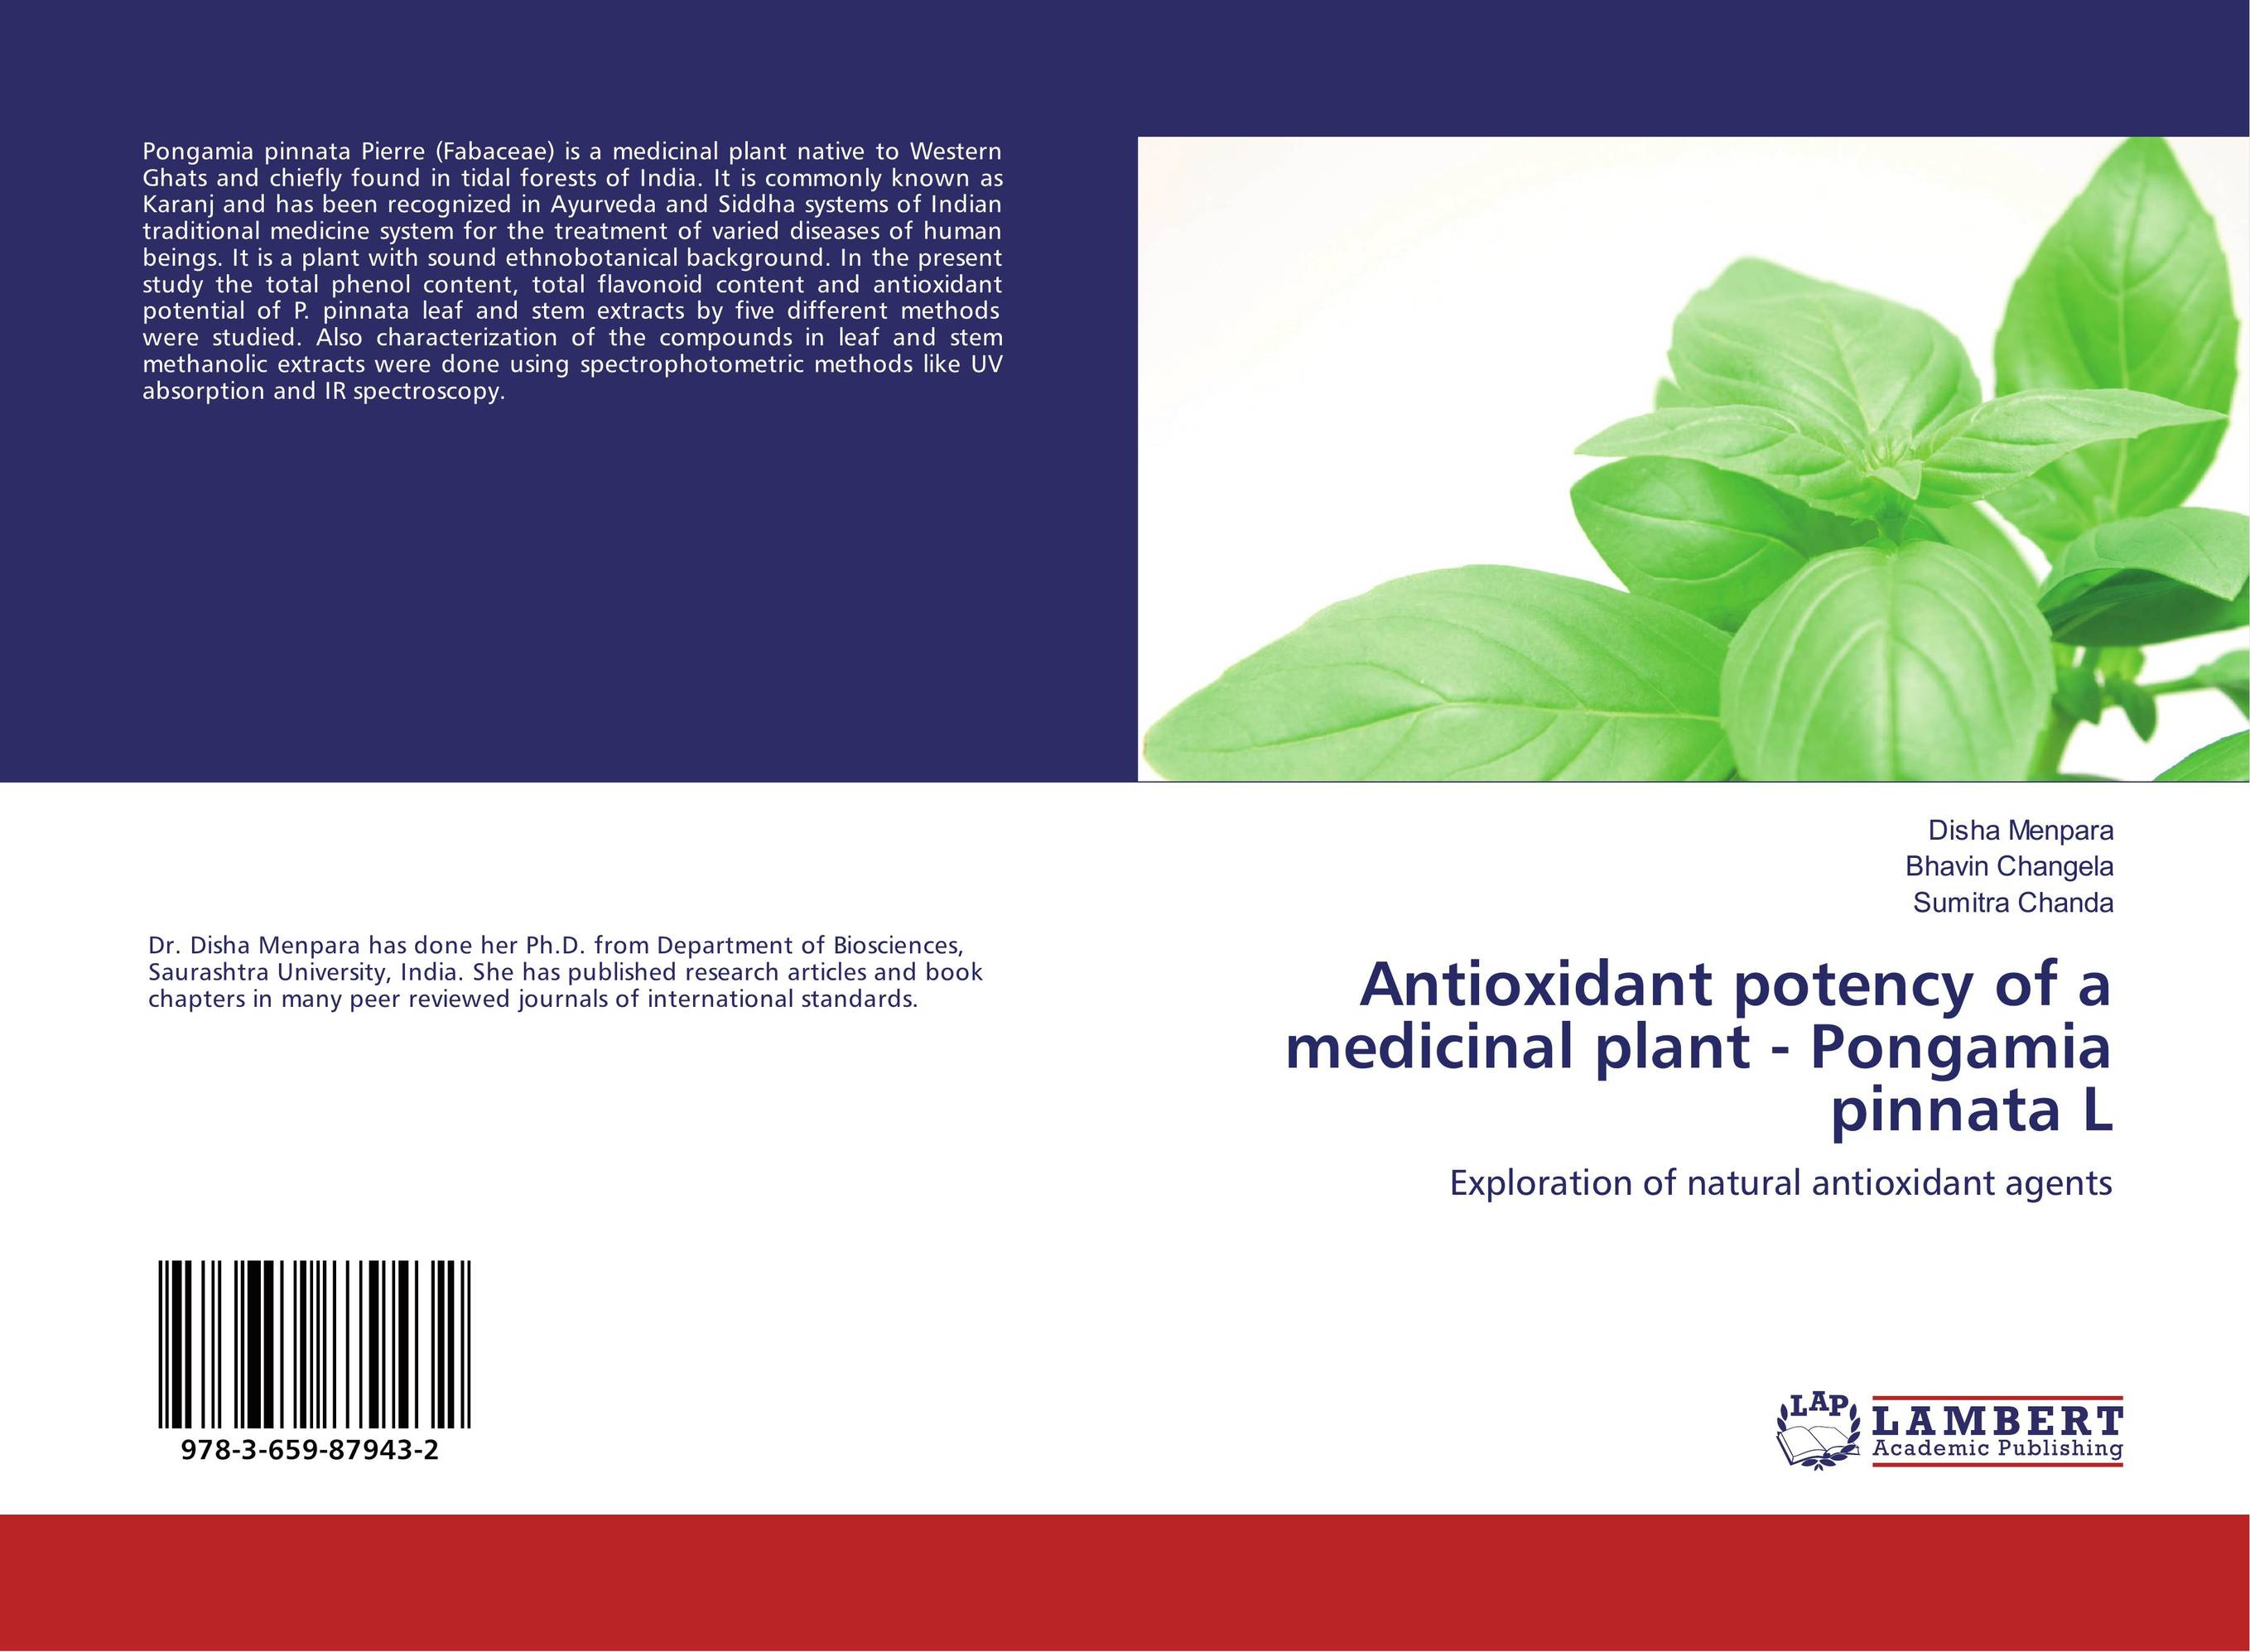 Antioxidant potency of a medicinal plant - Pongamia pinnata L effect of medicinal plant extracts on the viability of protoscoleces